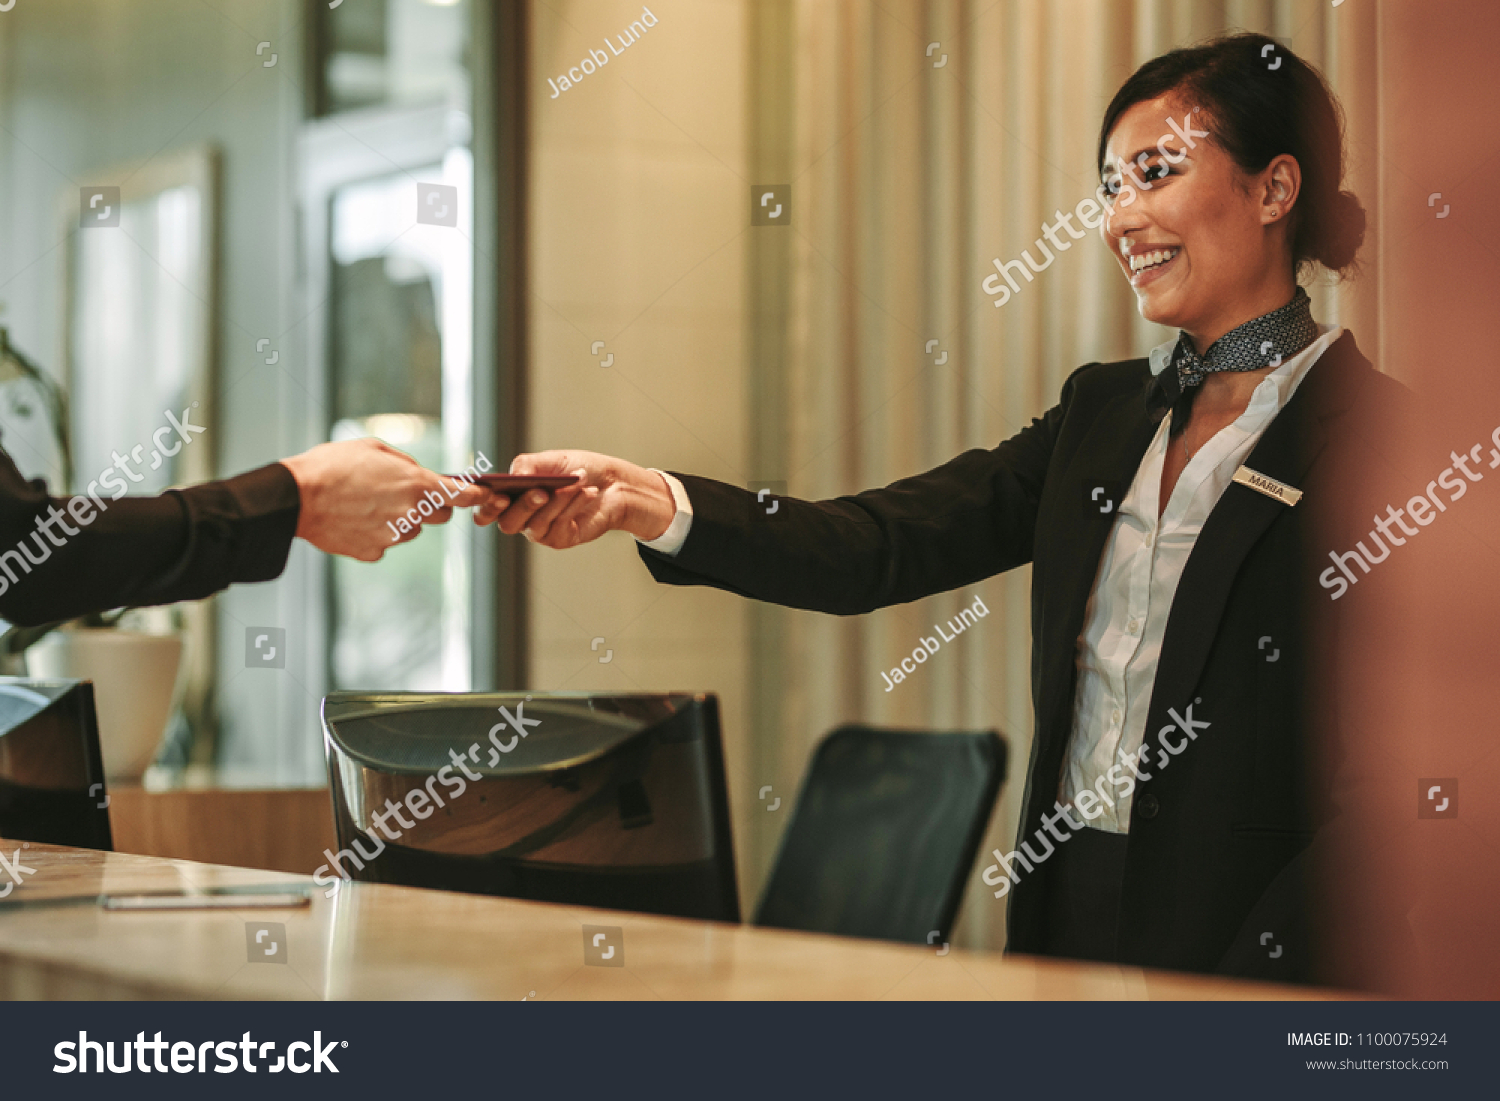 Smiling receptionist behind the hotel counter attending female guest. Concierge giving the documents to hotel guest. #1100075924